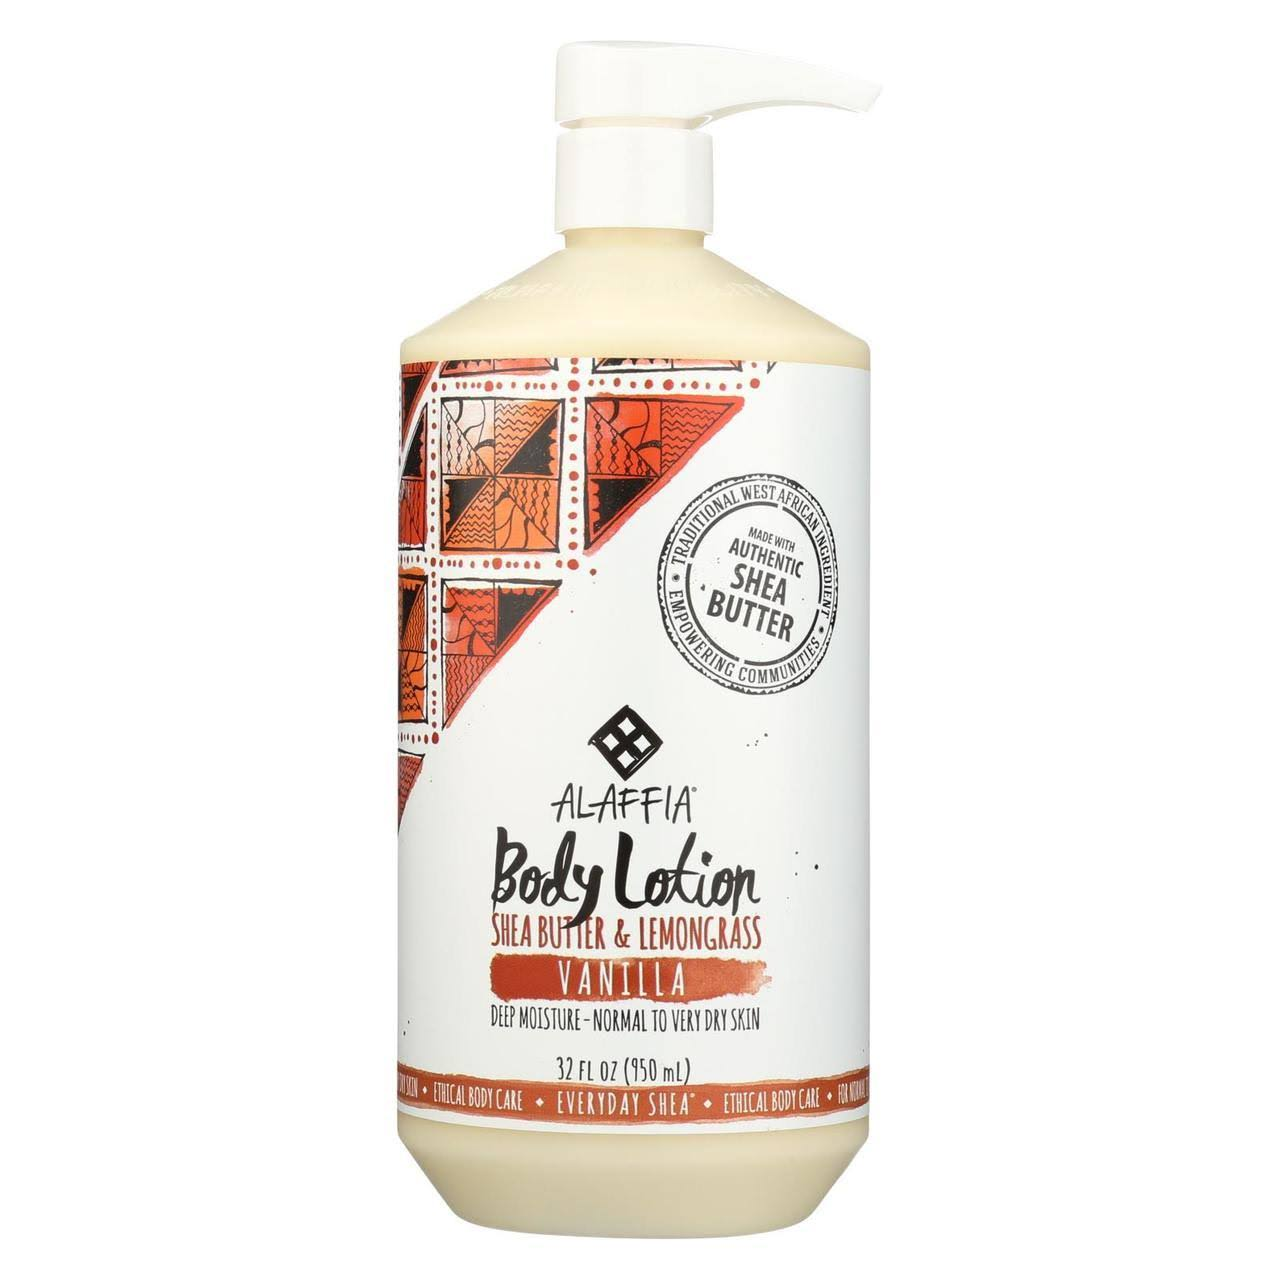 Everyday Shea Moisturizing Body Lotion - Vanilla, 32oz